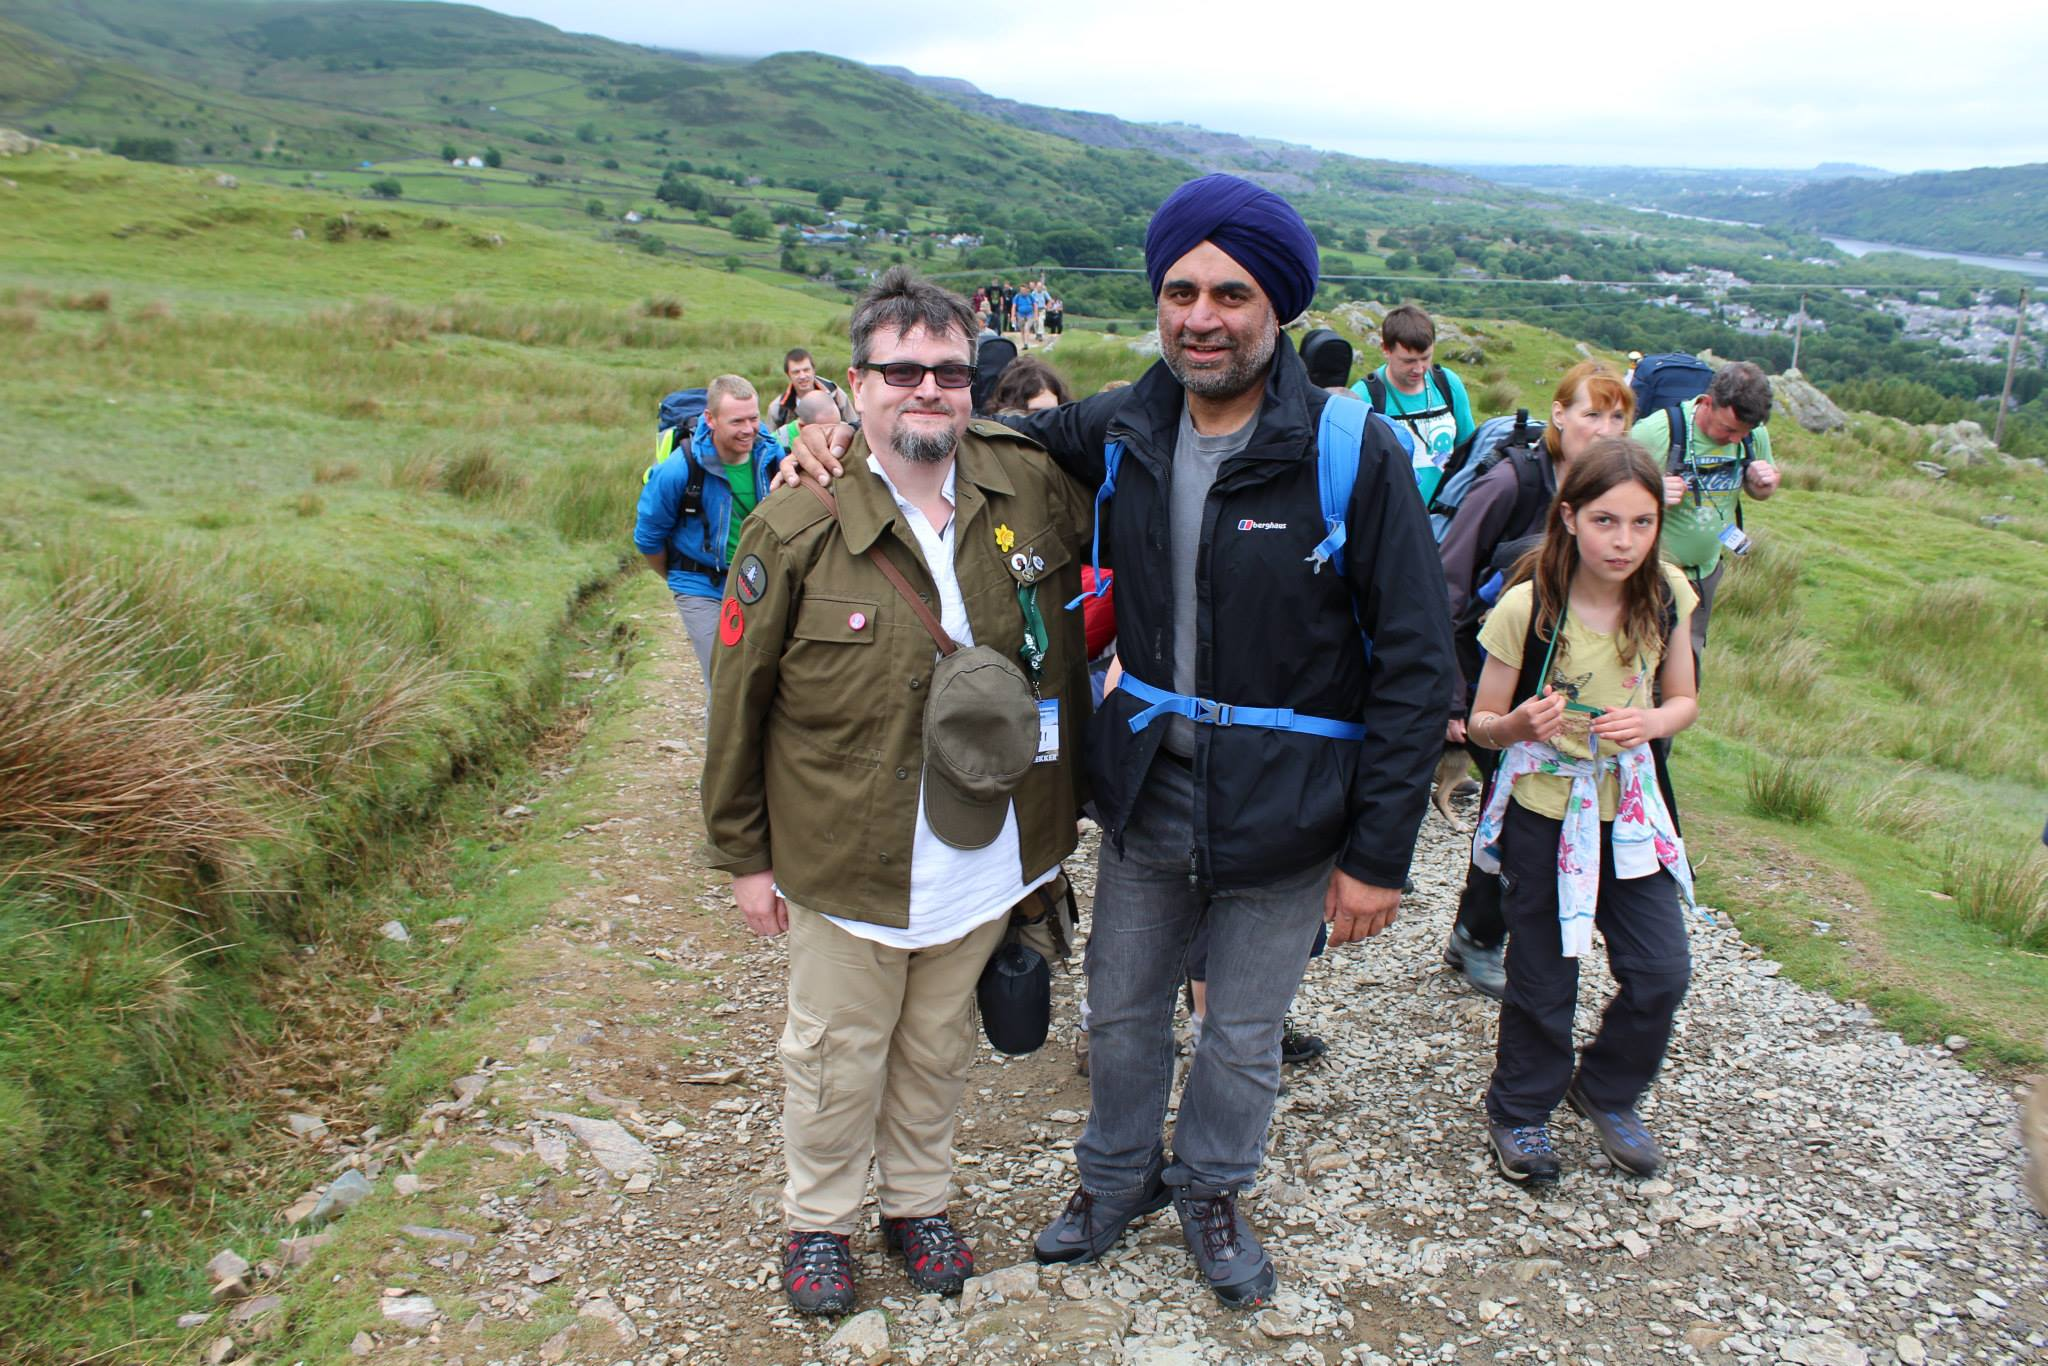 Snowdon June 2015 Nepal Earthquake Appeal